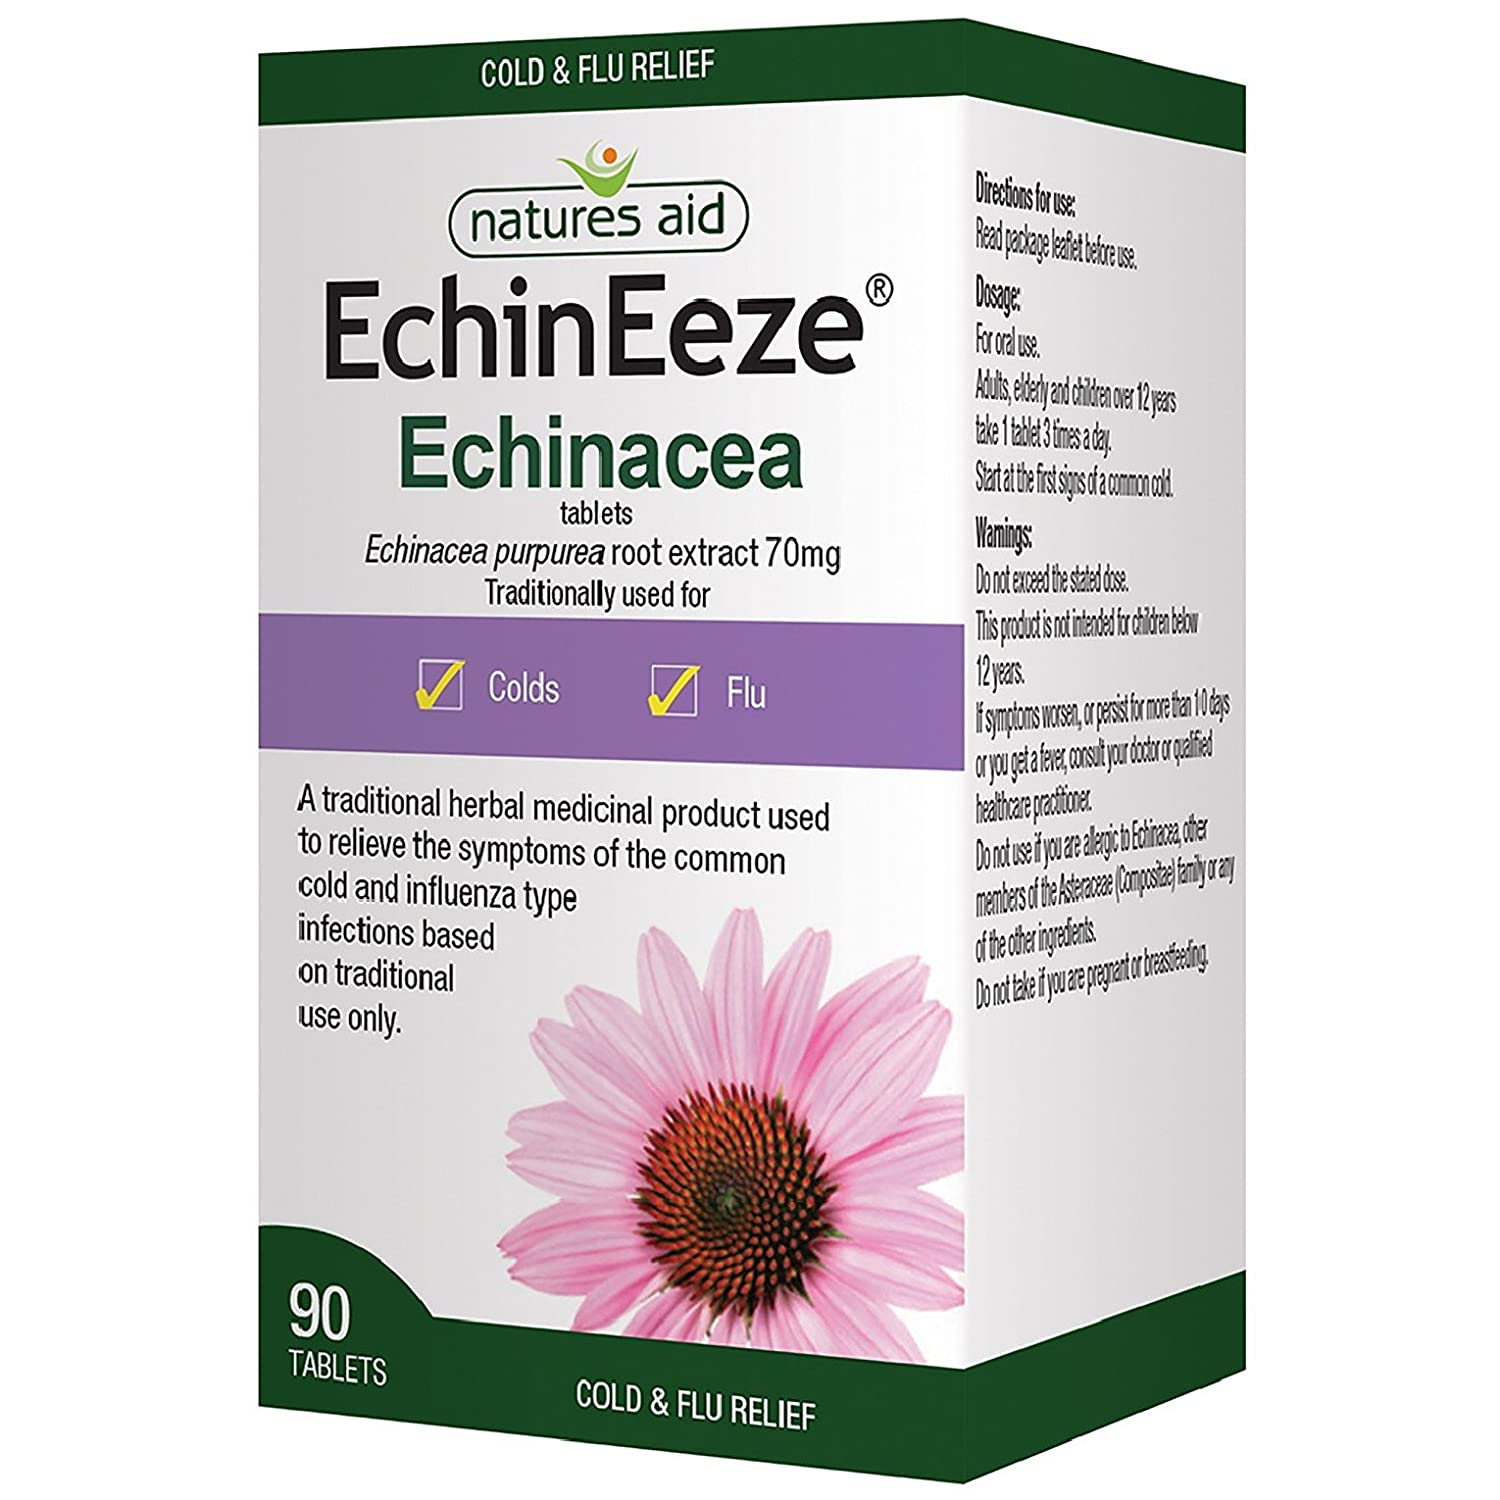 Echinacea tablets: instructions for use and reviews 25